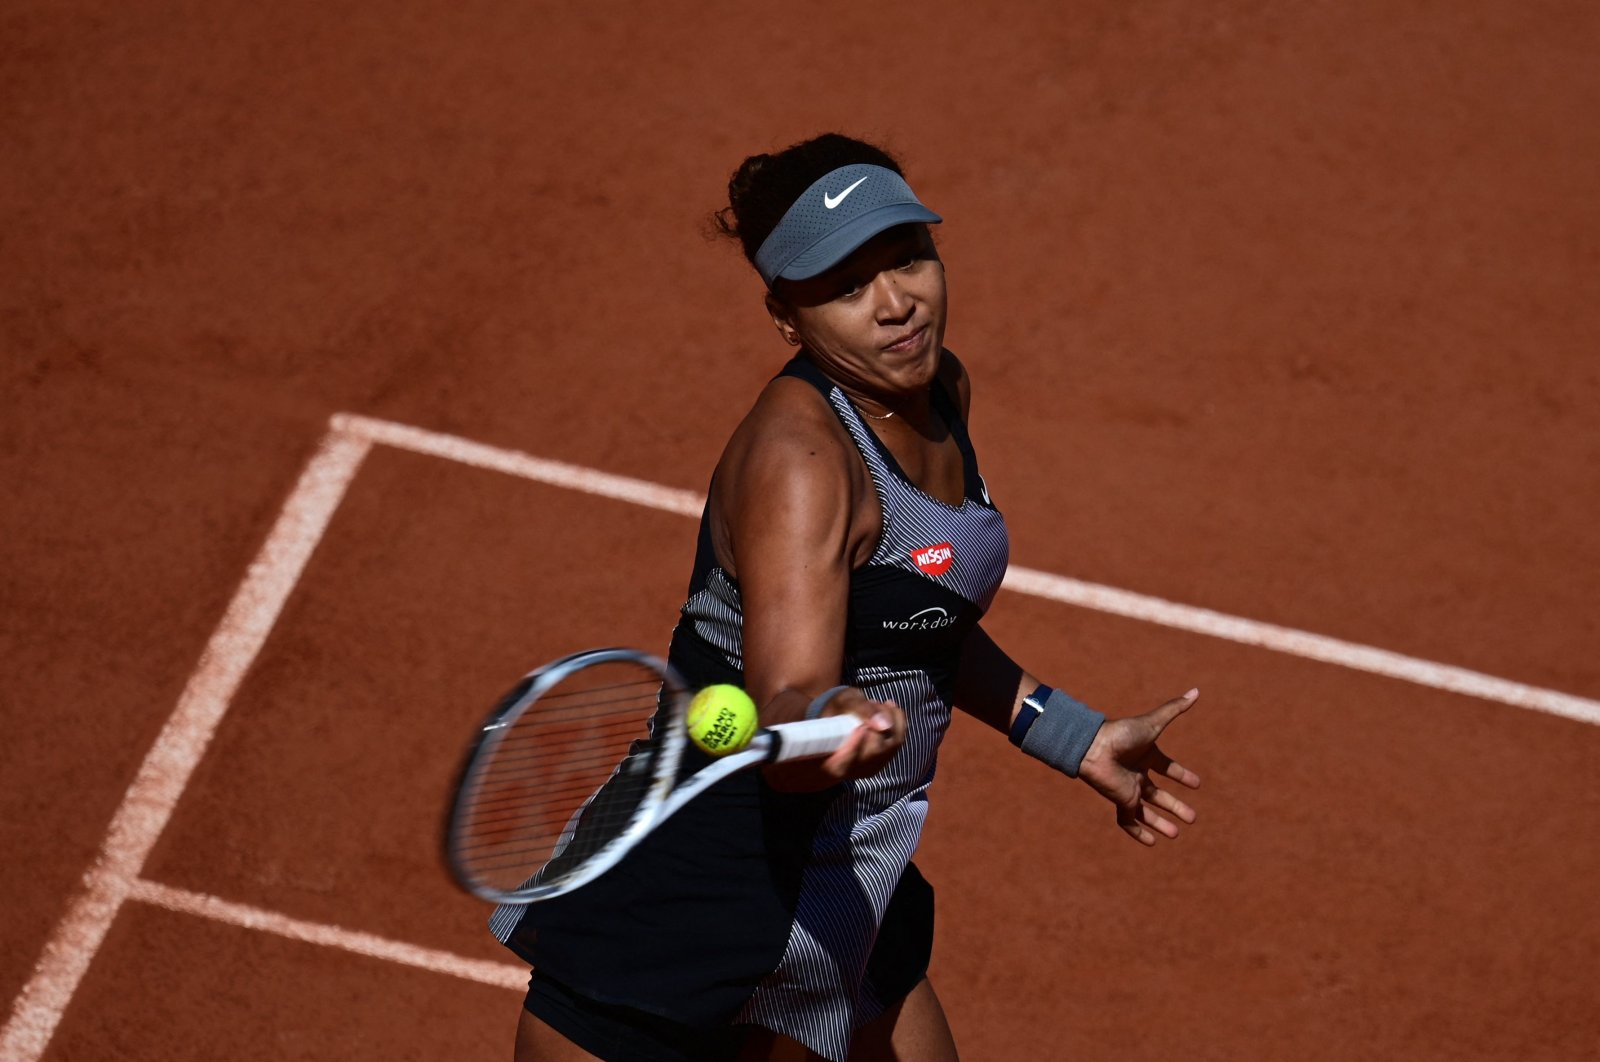 Japan's Naomi Osaka returns the ball to Romania's Patricia Maria Tig during their women's singles first round tennis match on Day 1 of the French Open, Paris, France, May 30, 2021. (AFP Photo)